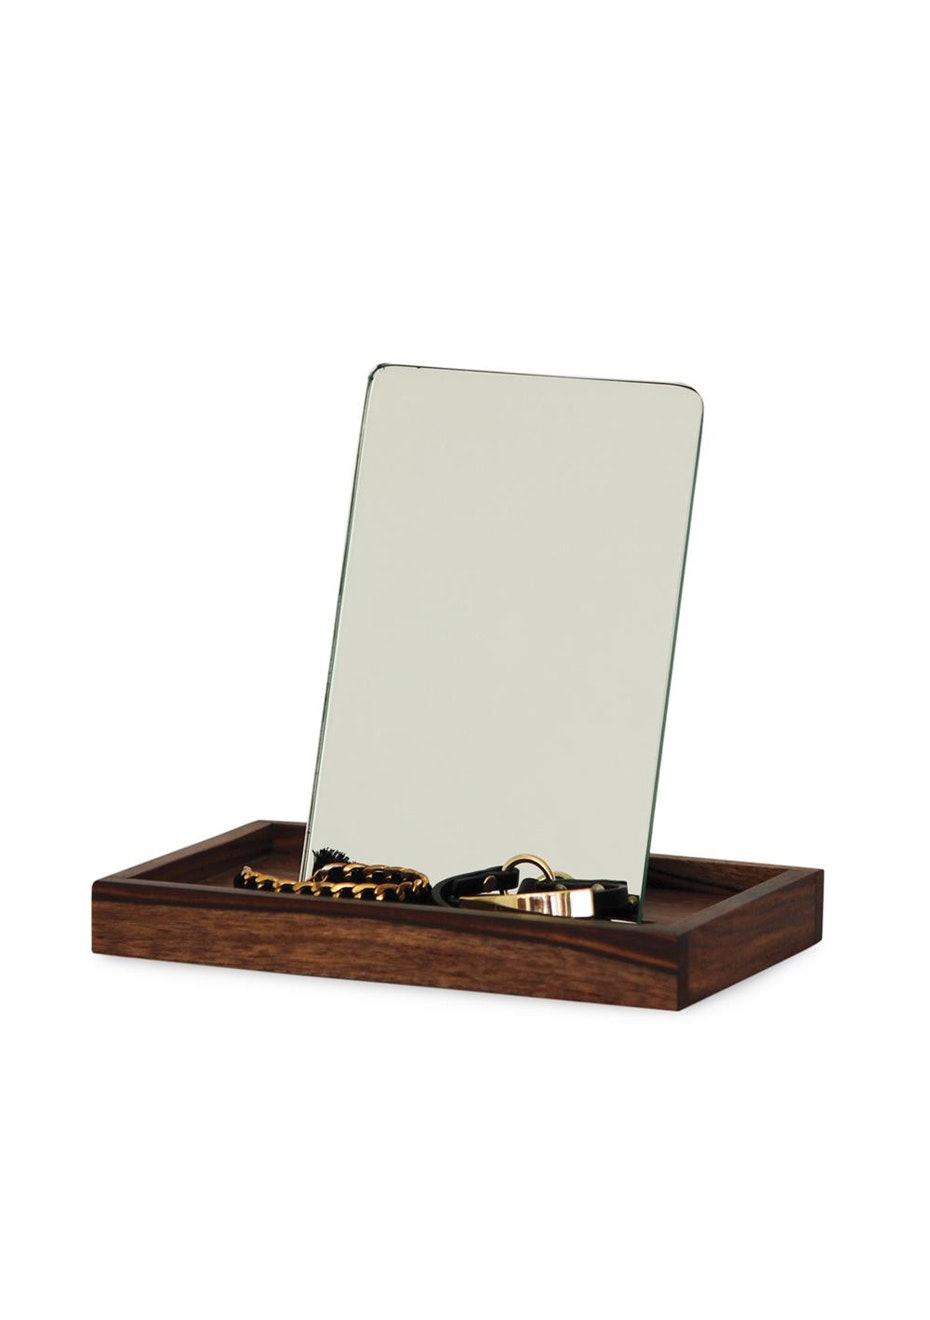 Me & My Trend - Jewellery Tray With Mirror